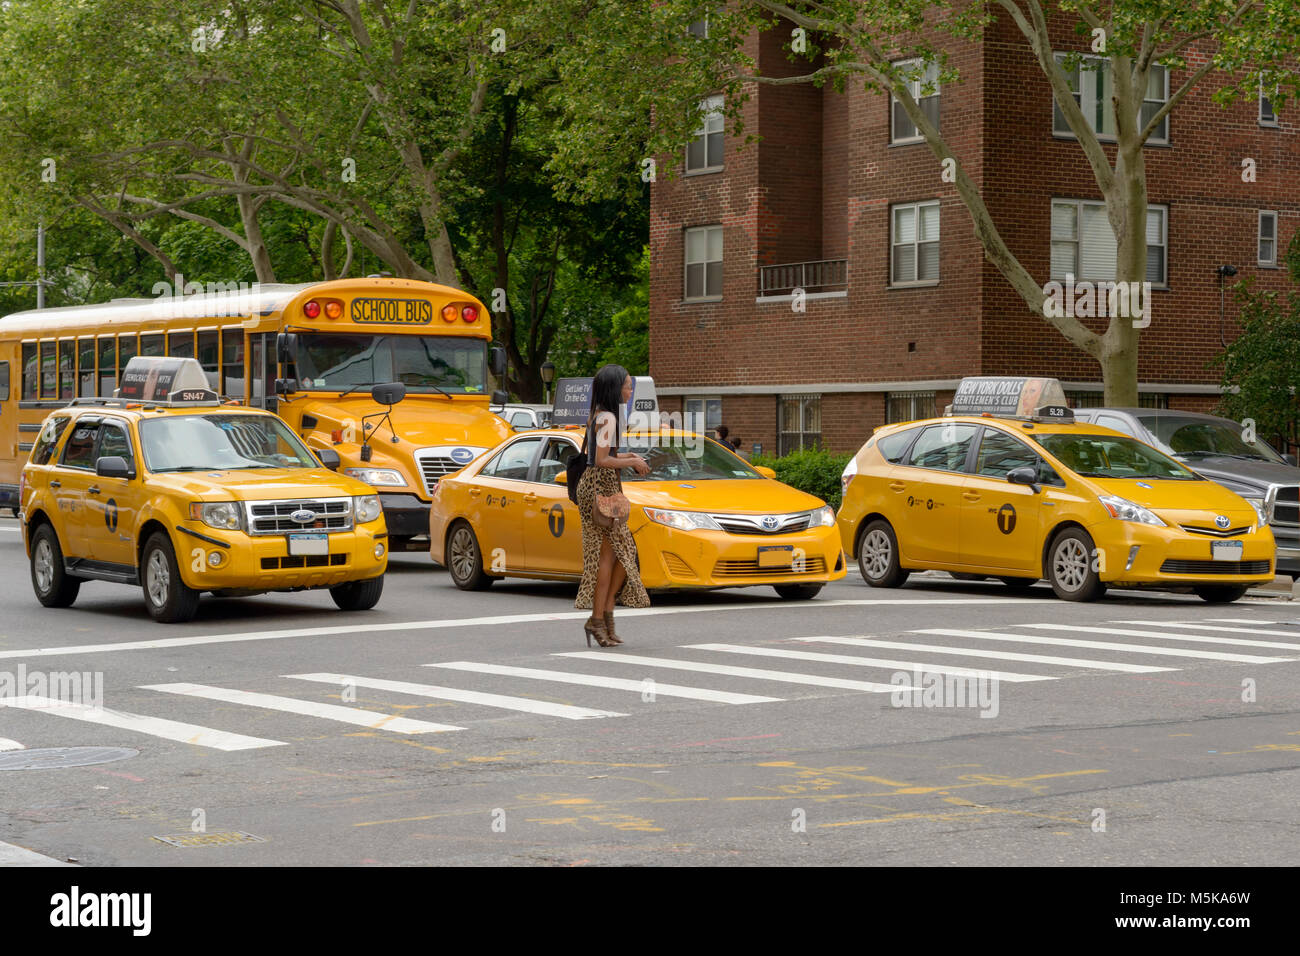 New York City, USA - June 08, 2015: New York yellow taxi cab stop at pedestrians traffic lights crossing the street Stock Photo